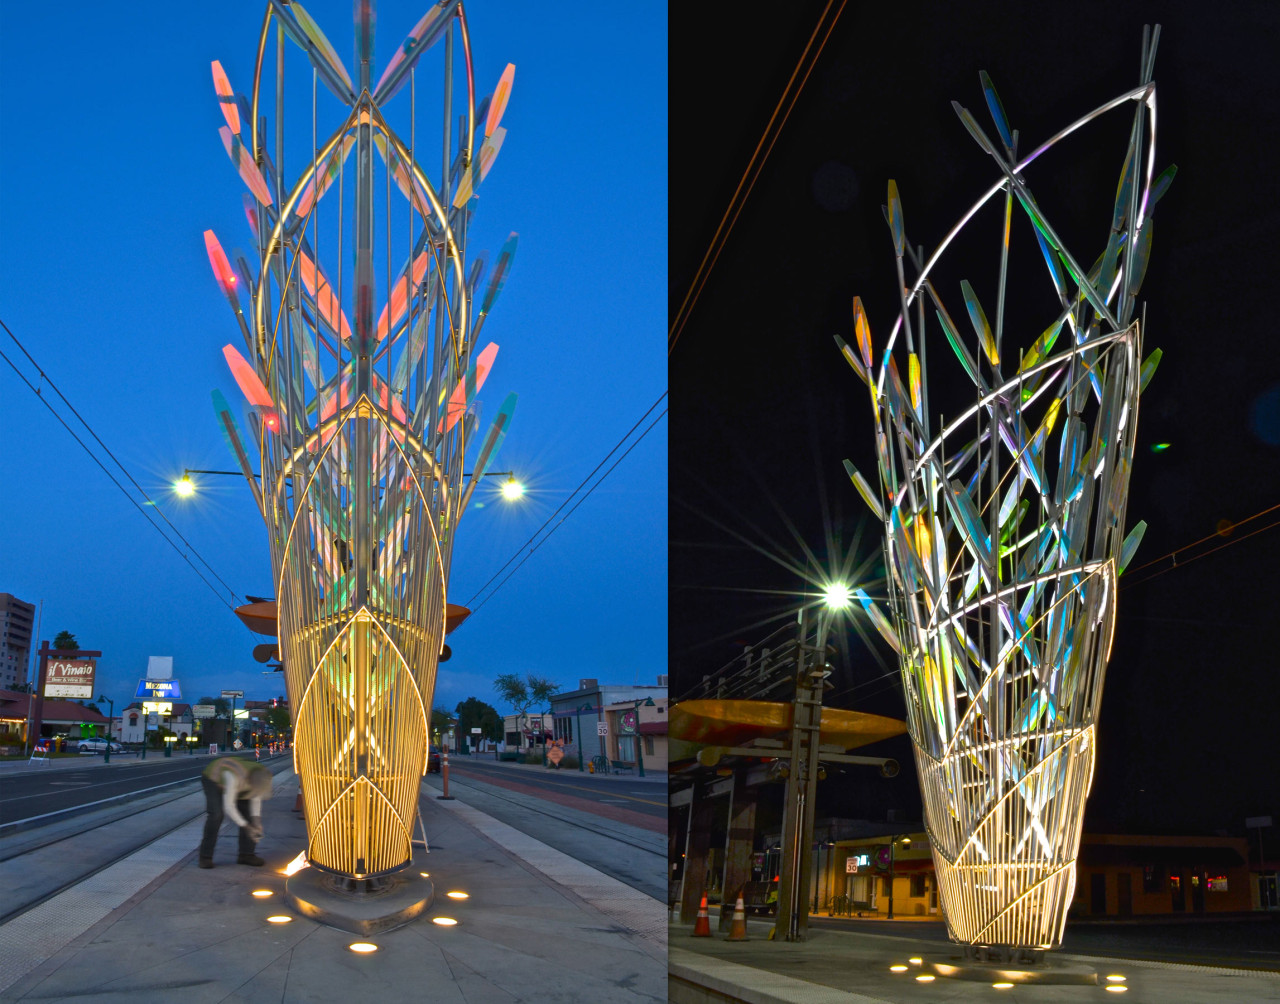 Ed Carpenter's Mesaflora sculpture in the core of the Country Club Road light rail station marks the western entry into downtown Mesa. The sculpture's up-lighting shown here in twilight and full night. / image 1